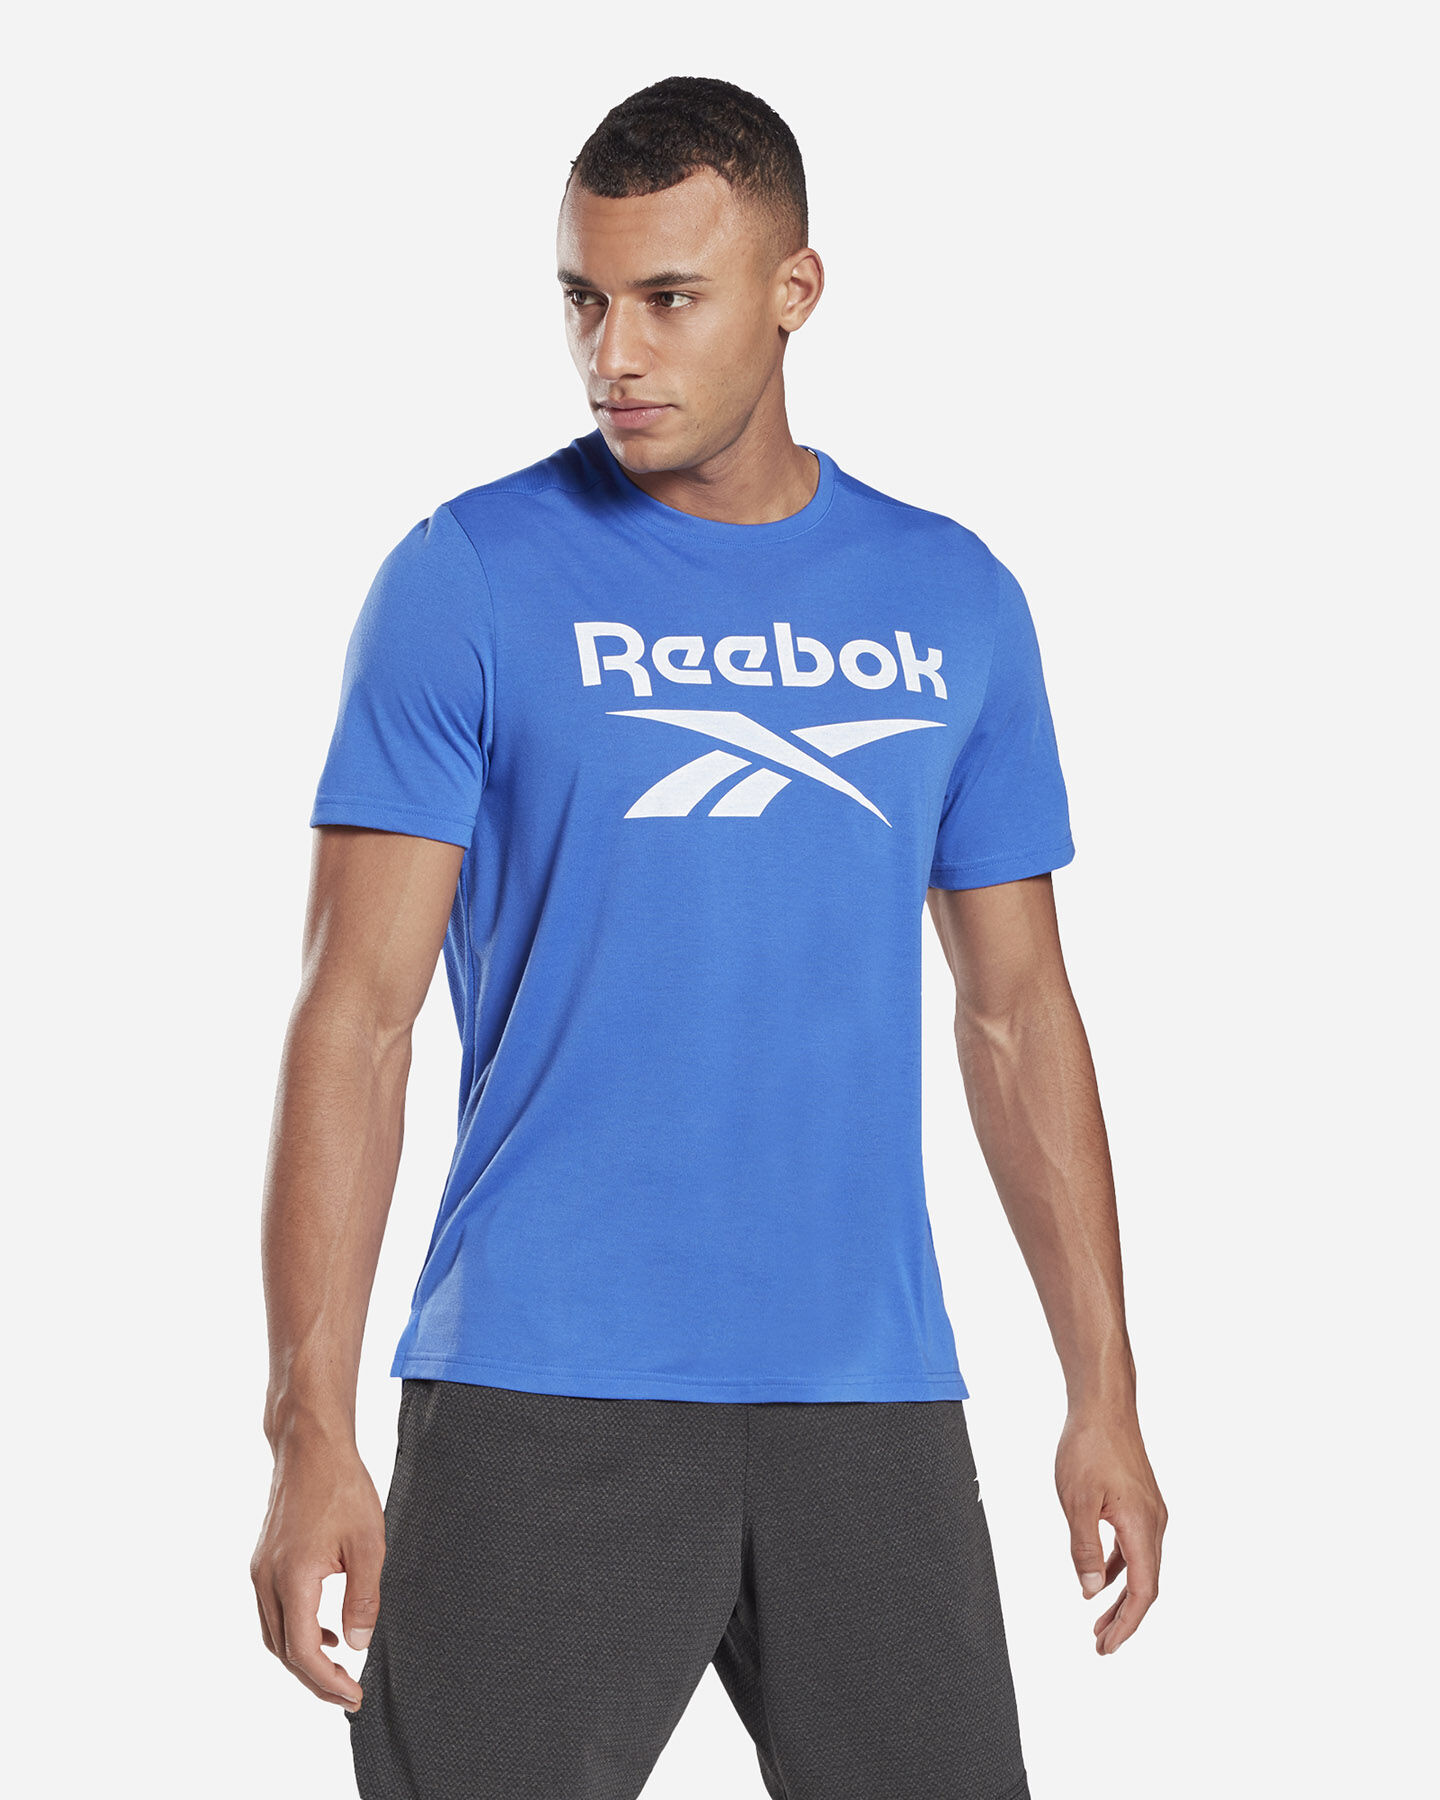 T-Shirt training REEBOK WORKOUT GRAPHIC M S5280252 scatto 2